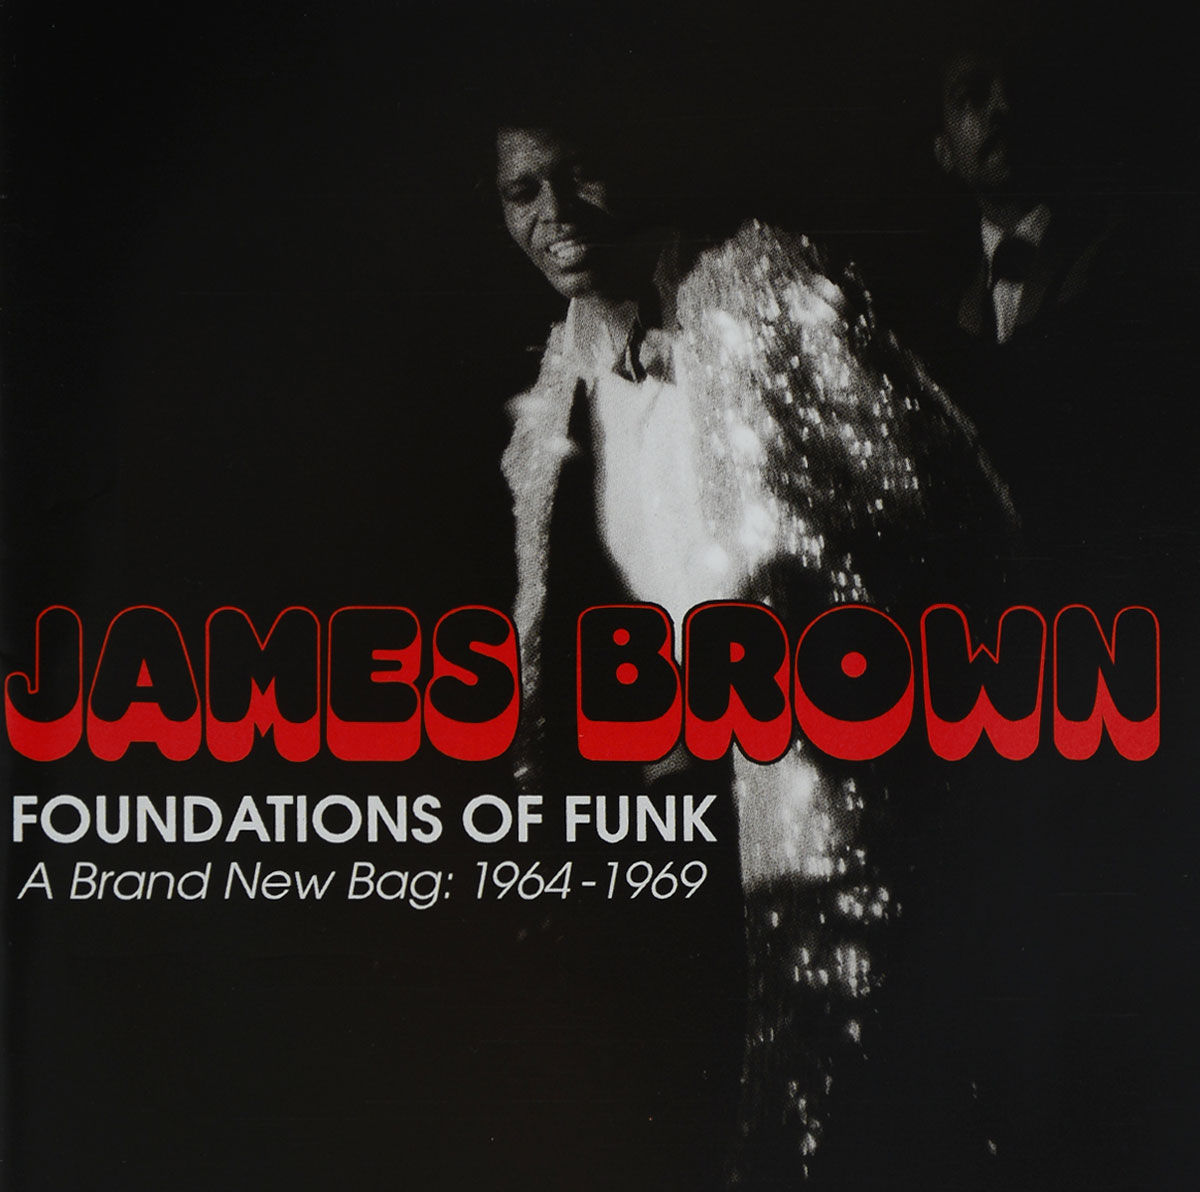 Джеймс Браун James Brown. Foundations Of Funk. A Brand New Bag. 1964-1969 (2 CD) the legacy of funk cd